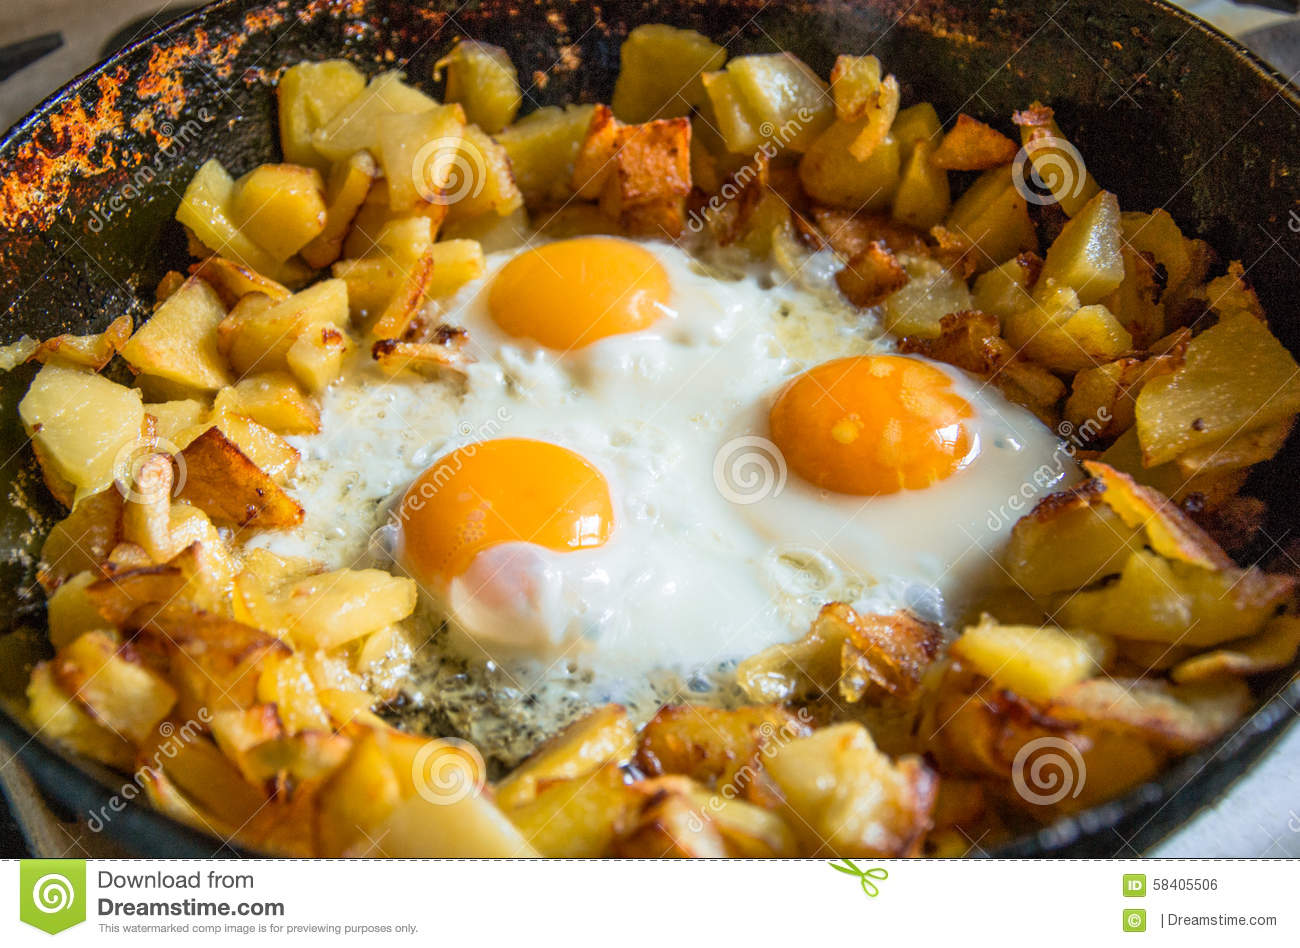 Fried Potatoes With Eggs In Pan Stock Photo - Image: 58405506